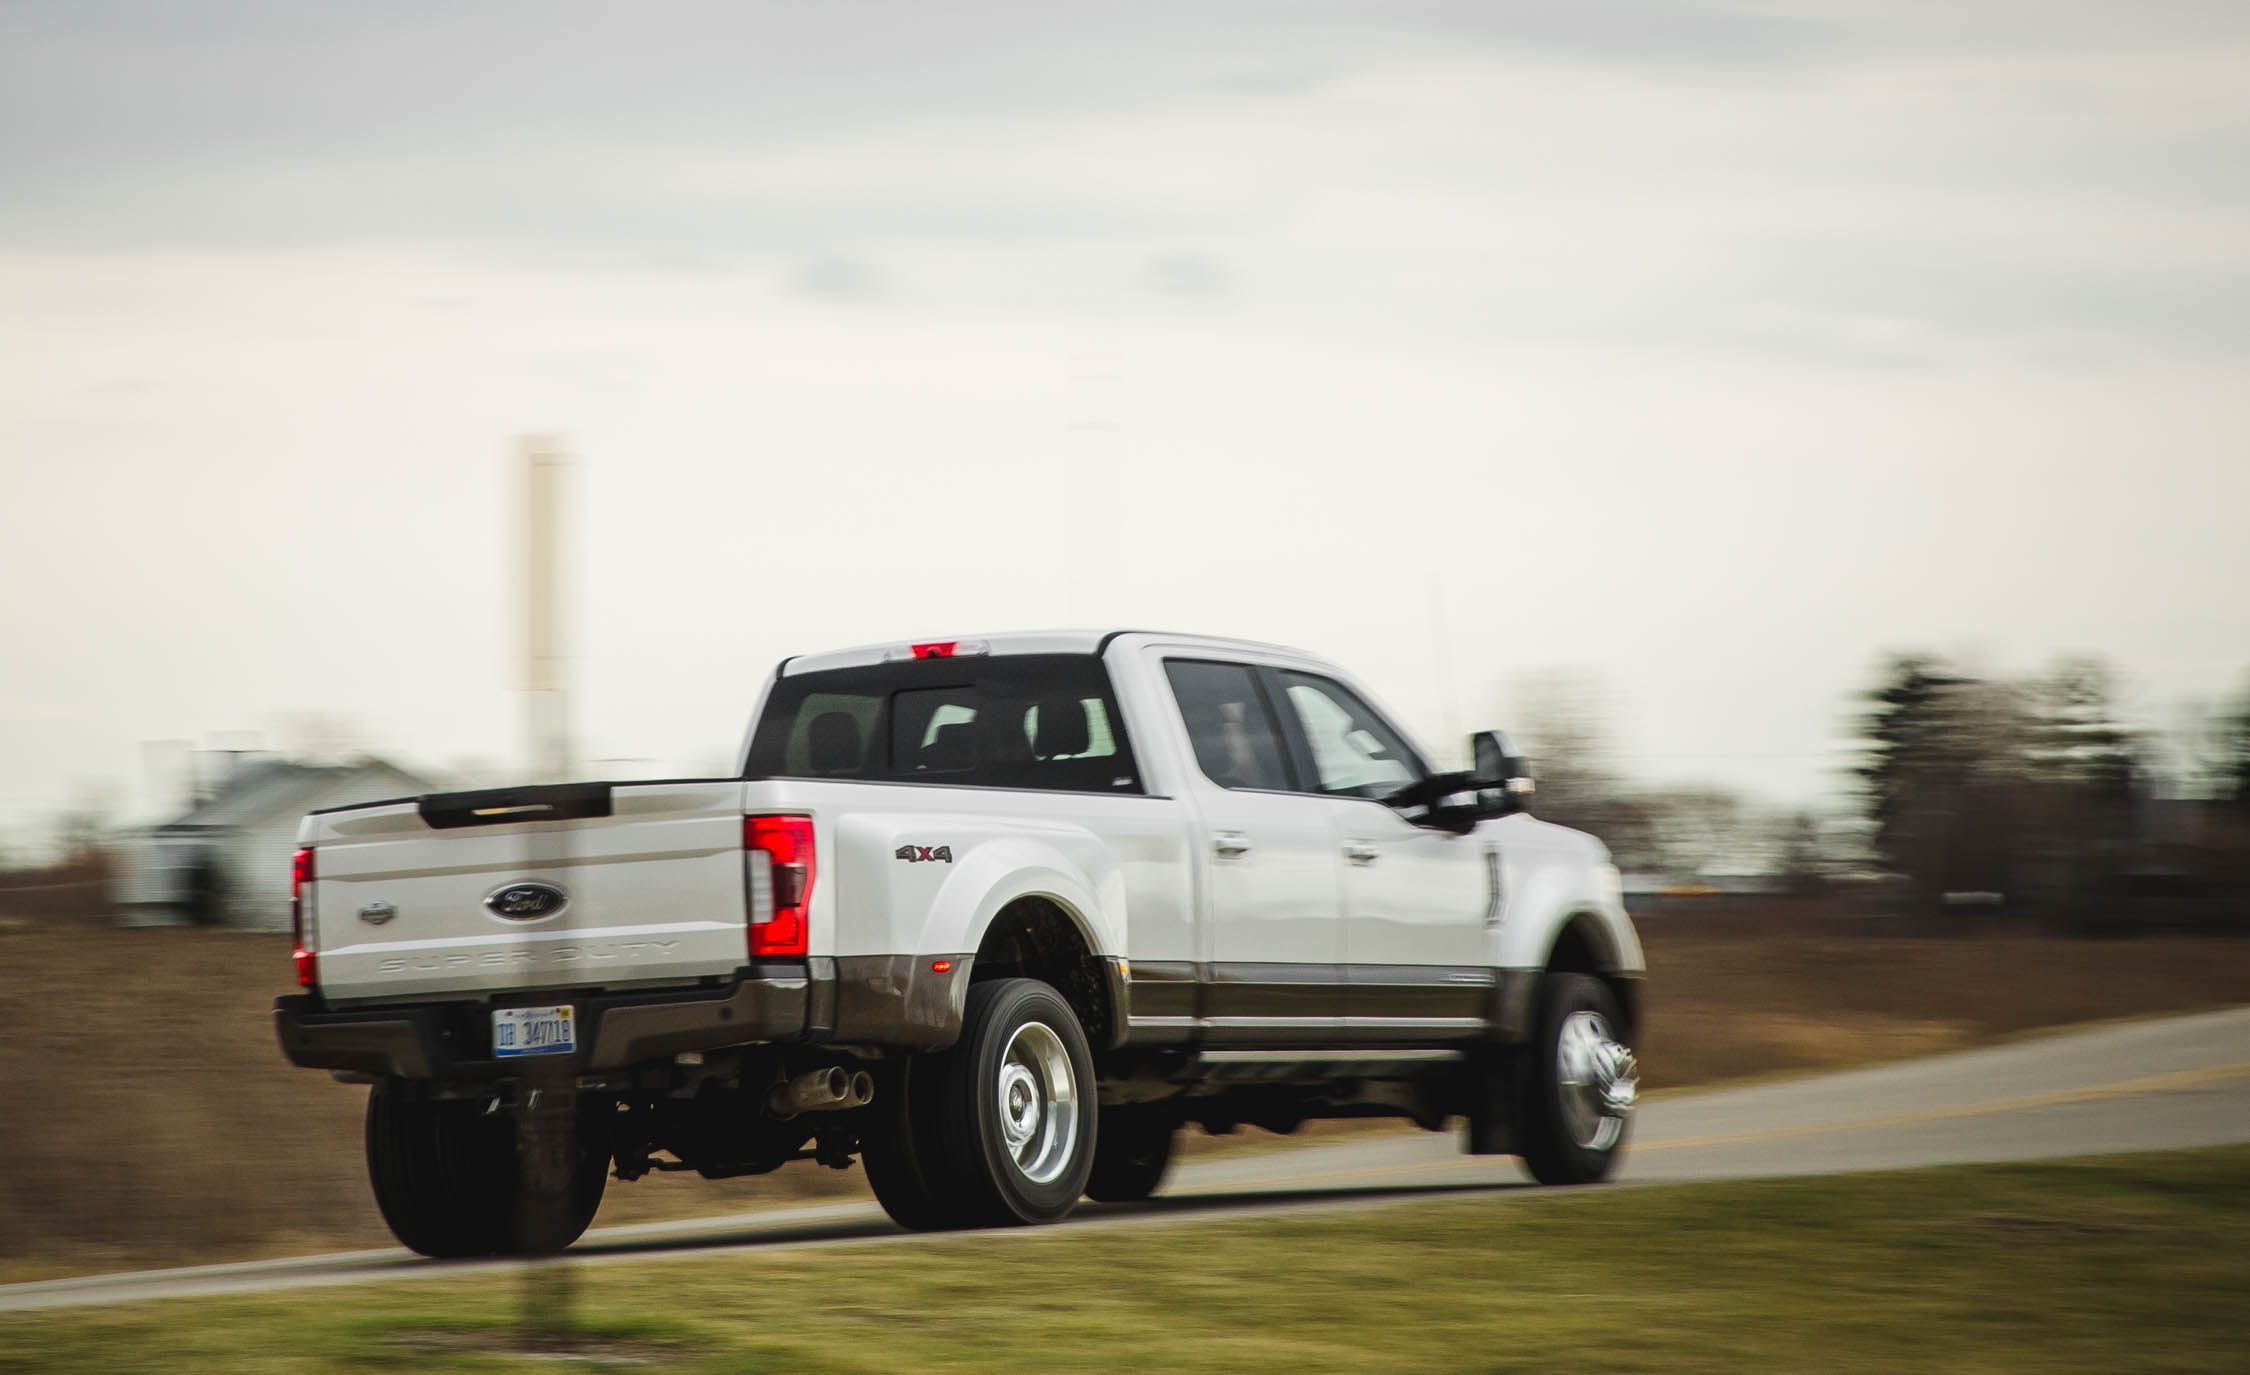 2019 Ford F-450 Super Duty Reviews | Ford F-450 Super Duty Price, Photos,  and Specs | Car and Driver